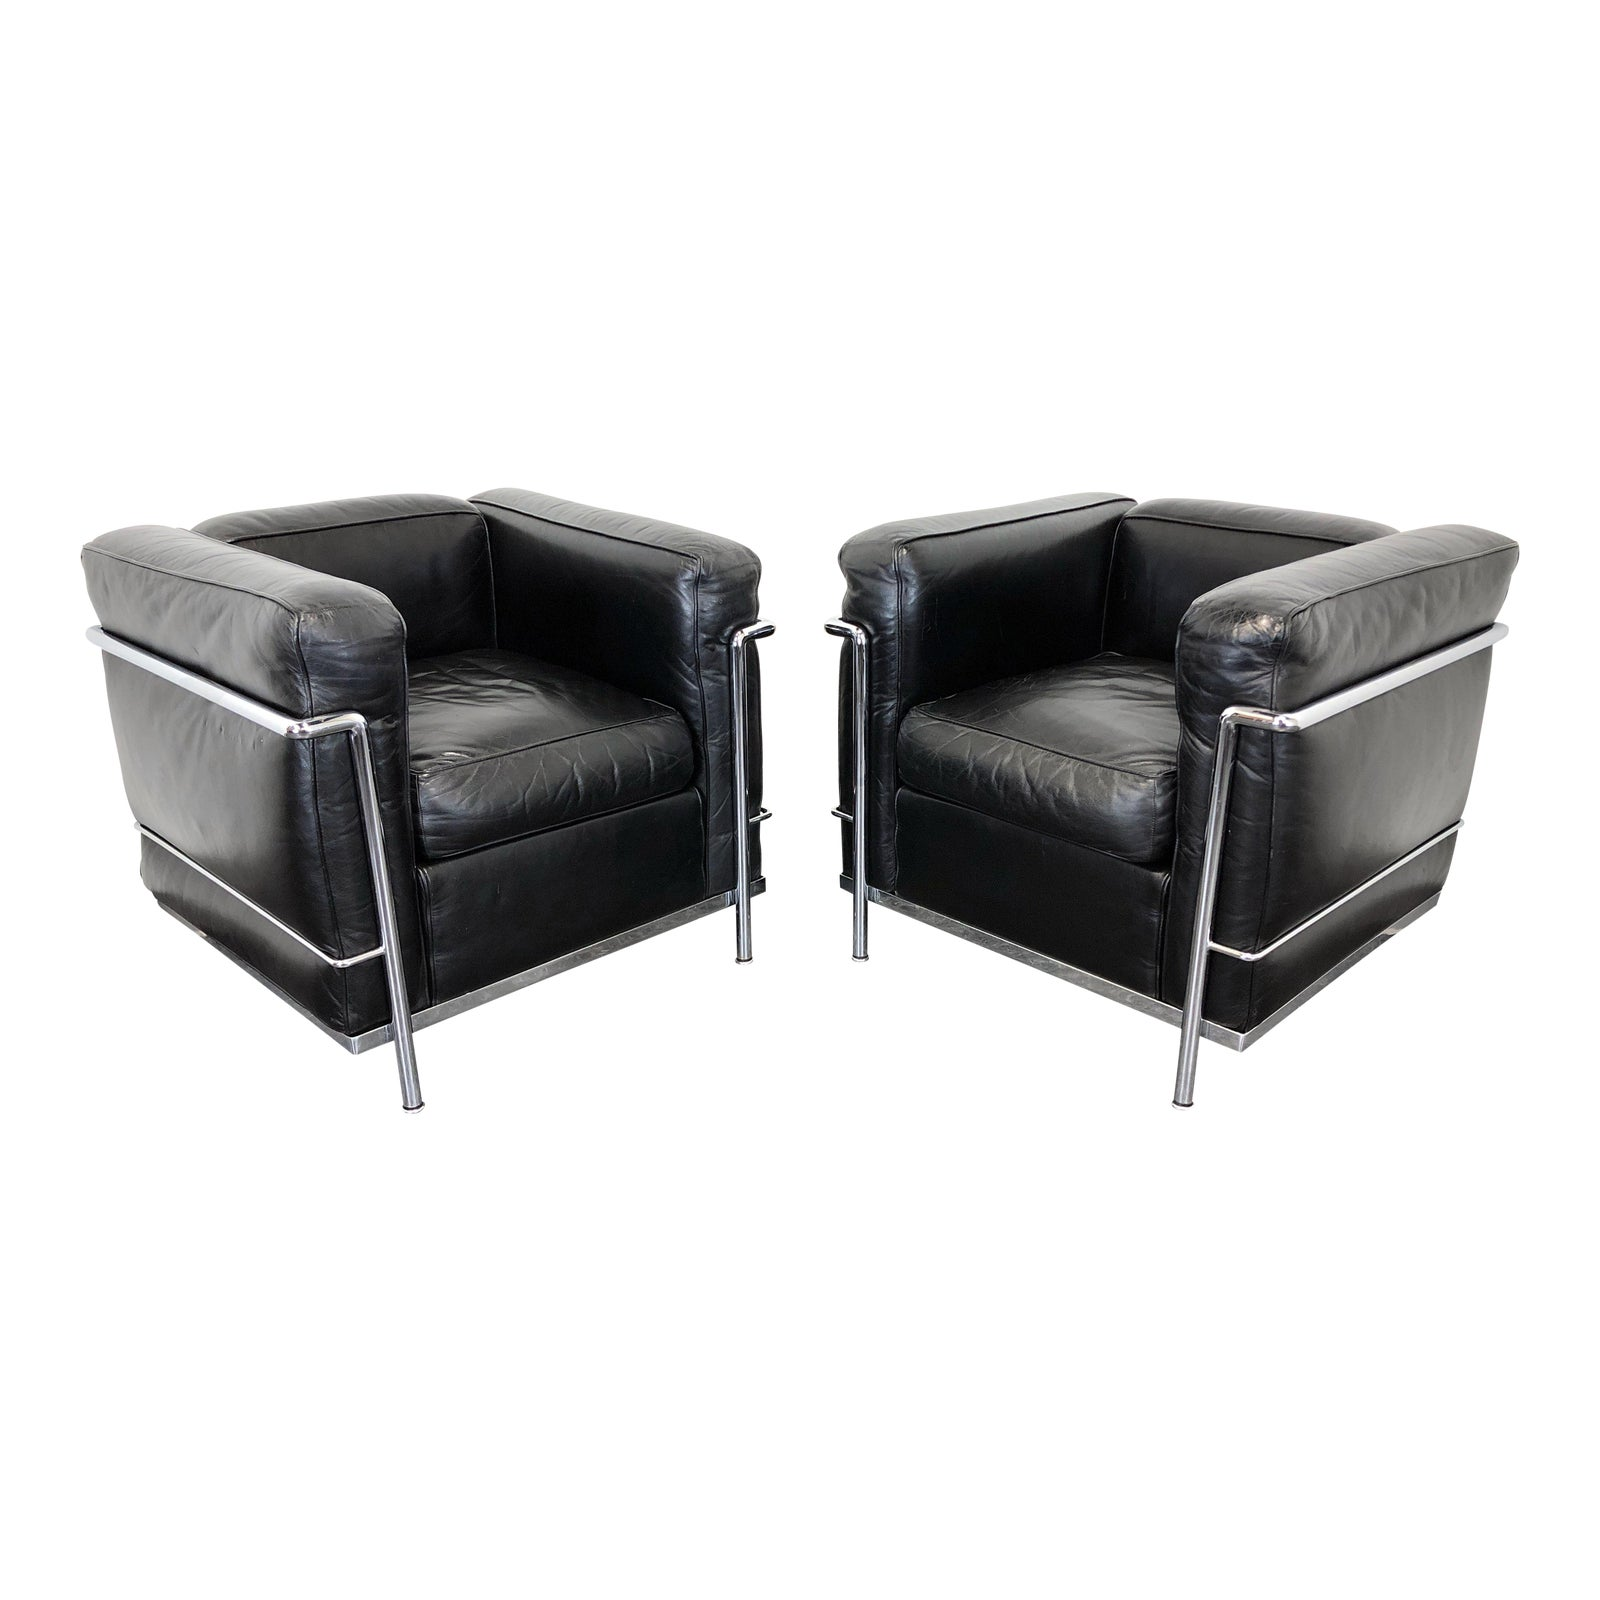 Cassina \'Lc2 Petit Modele\' Le Corbusier Club Chairs in Leather ...